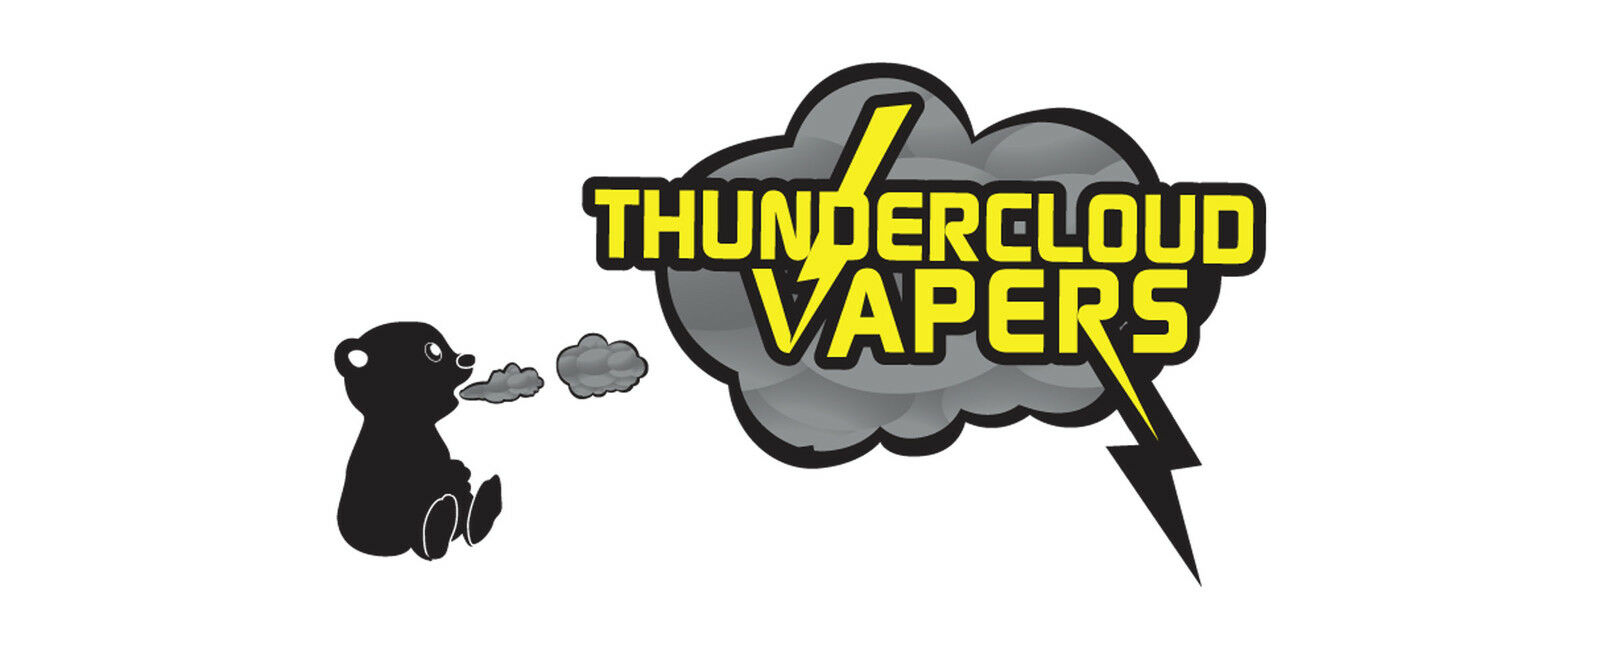 Thundercloud Vapers